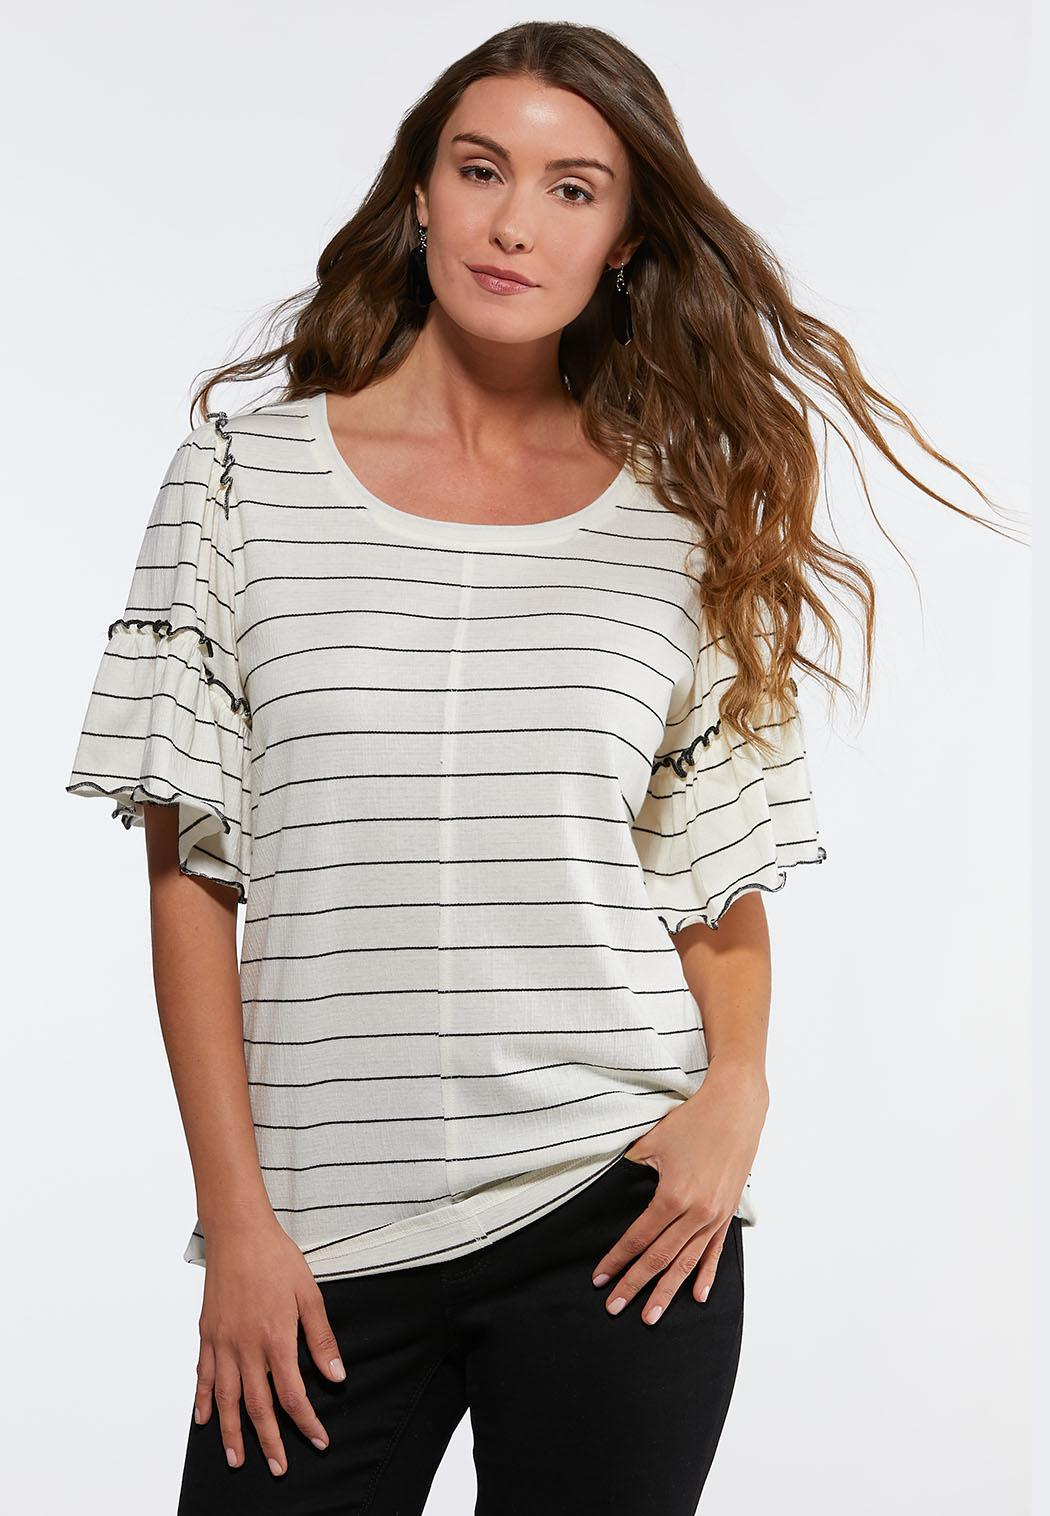 706a1af0c68 Plus Size Stripe Ruffled Top Tees   Knit Tops Cato Fashions